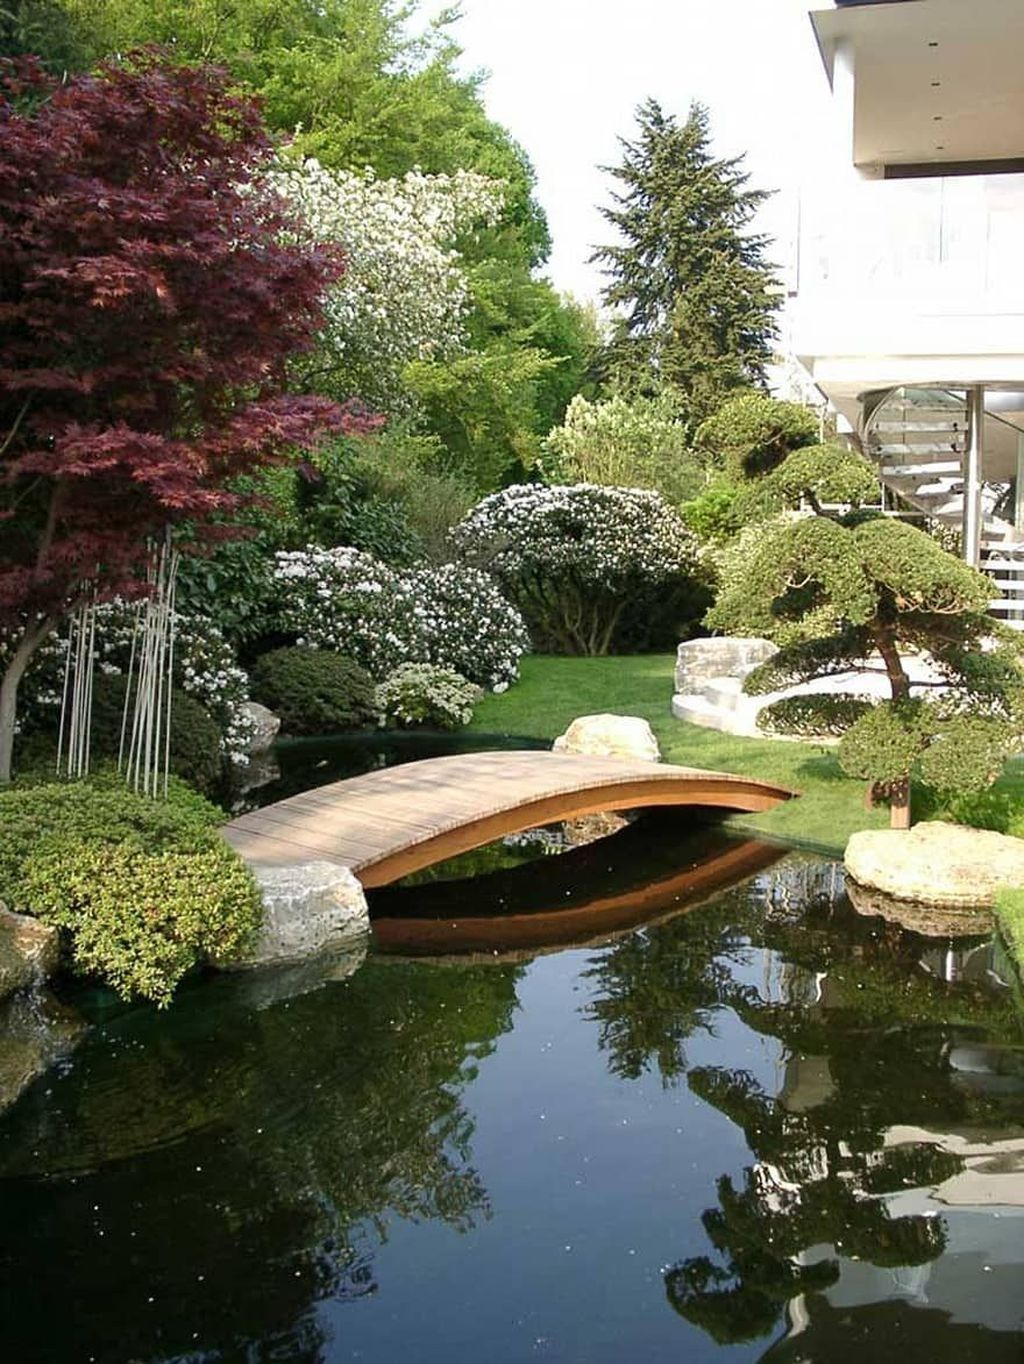 50 Beautiful Modern Backyard Landscaping Design Ideas #modernlandscapedesign